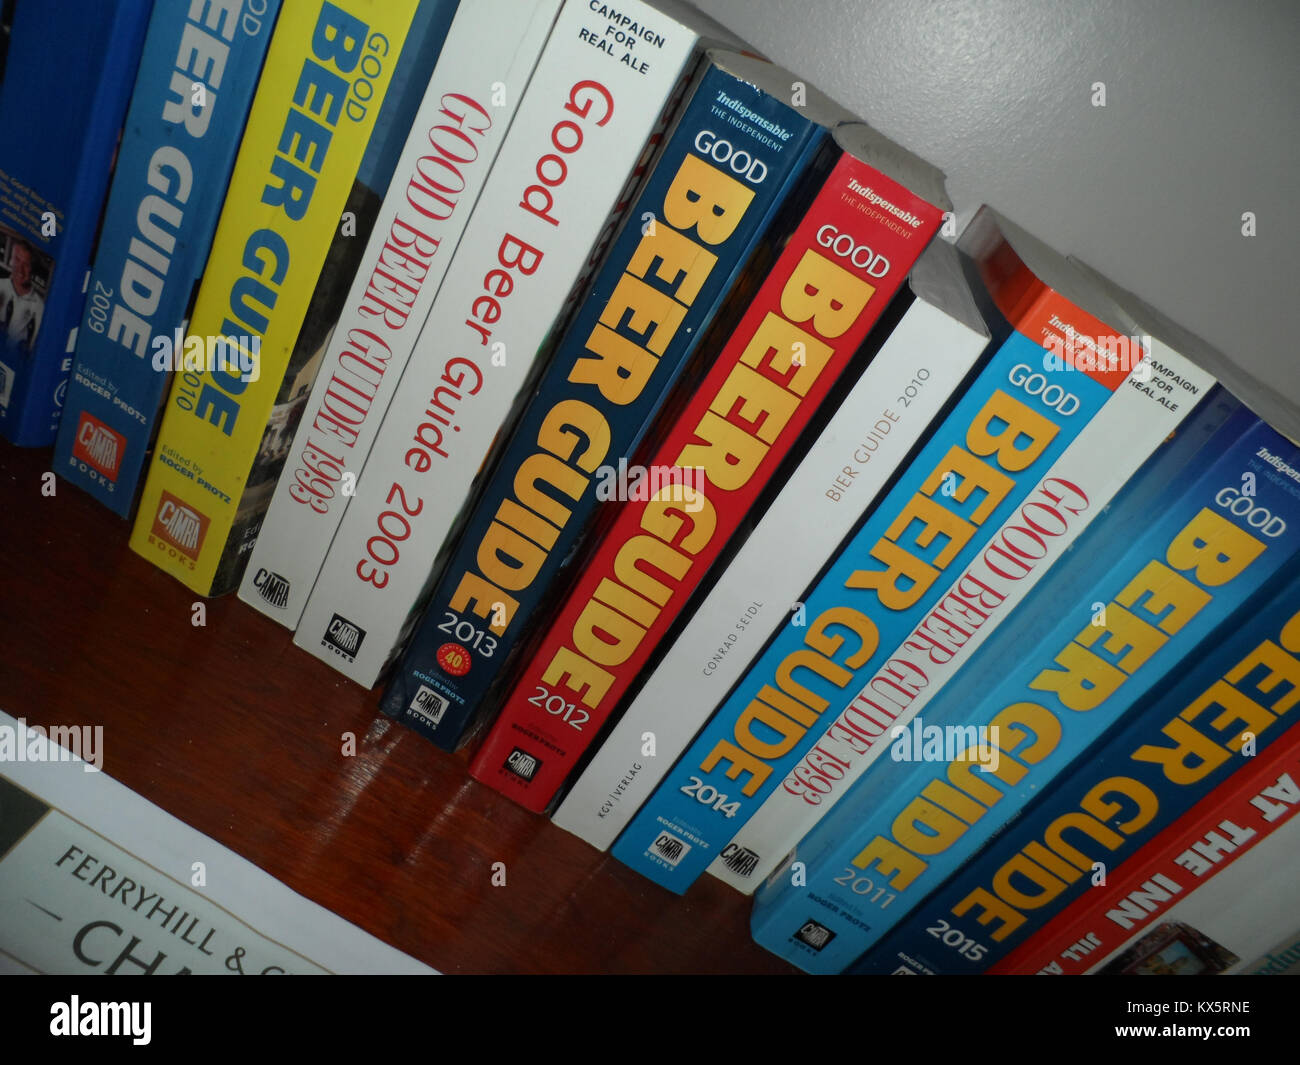 A selection of Camra Good Beer Guide books an a shelf in an English pub in Durham, England. - Stock Image